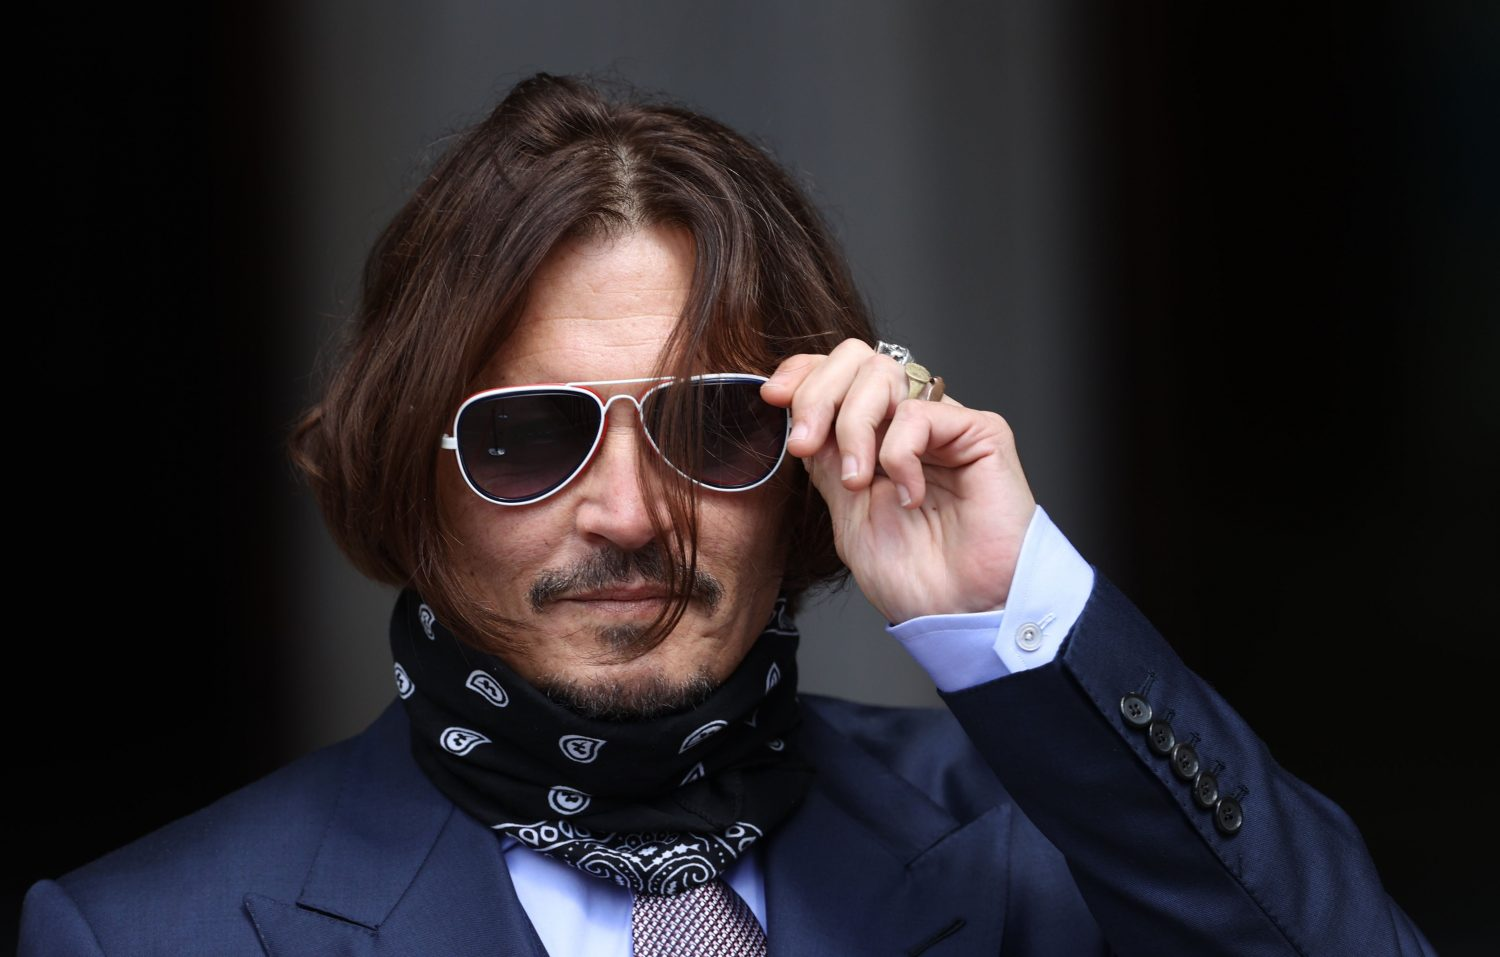 """Johnny Depp Slams Hollywood's """"boycott"""" Of Him, Promises To Bring Things """"to Light"""""""